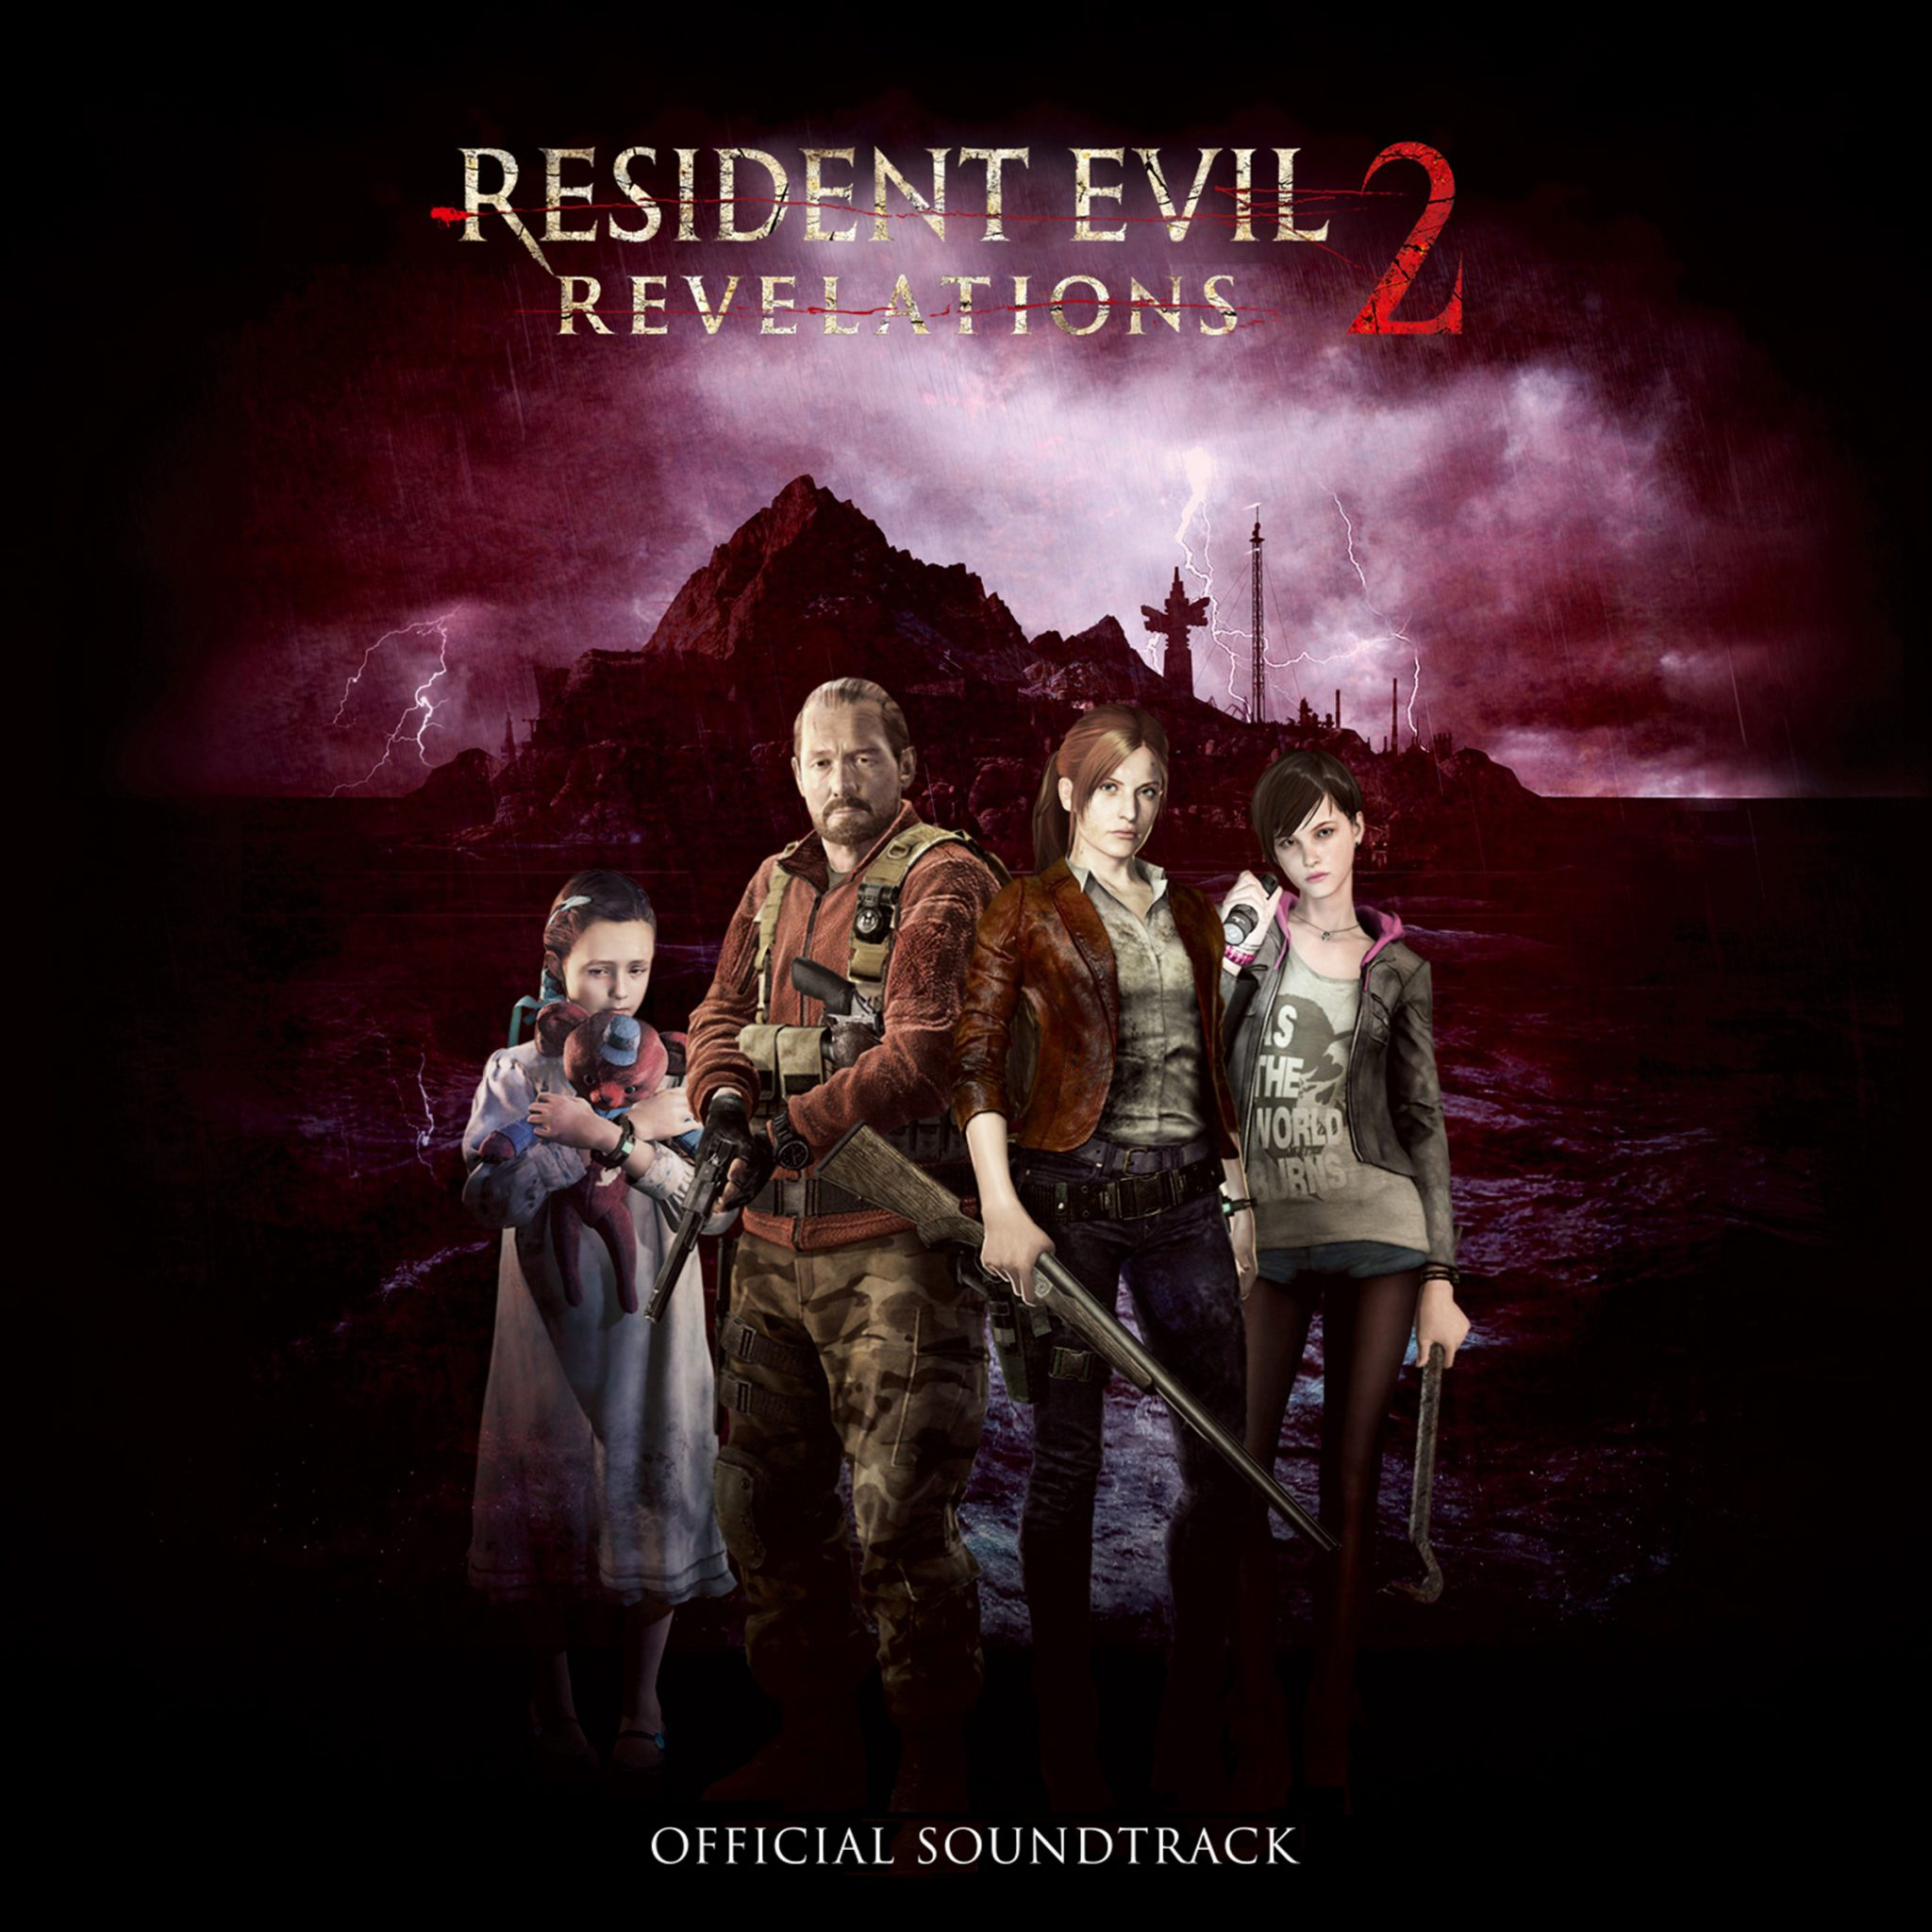 Resident Evil Revelations 2 Soundtrack Available Now ...